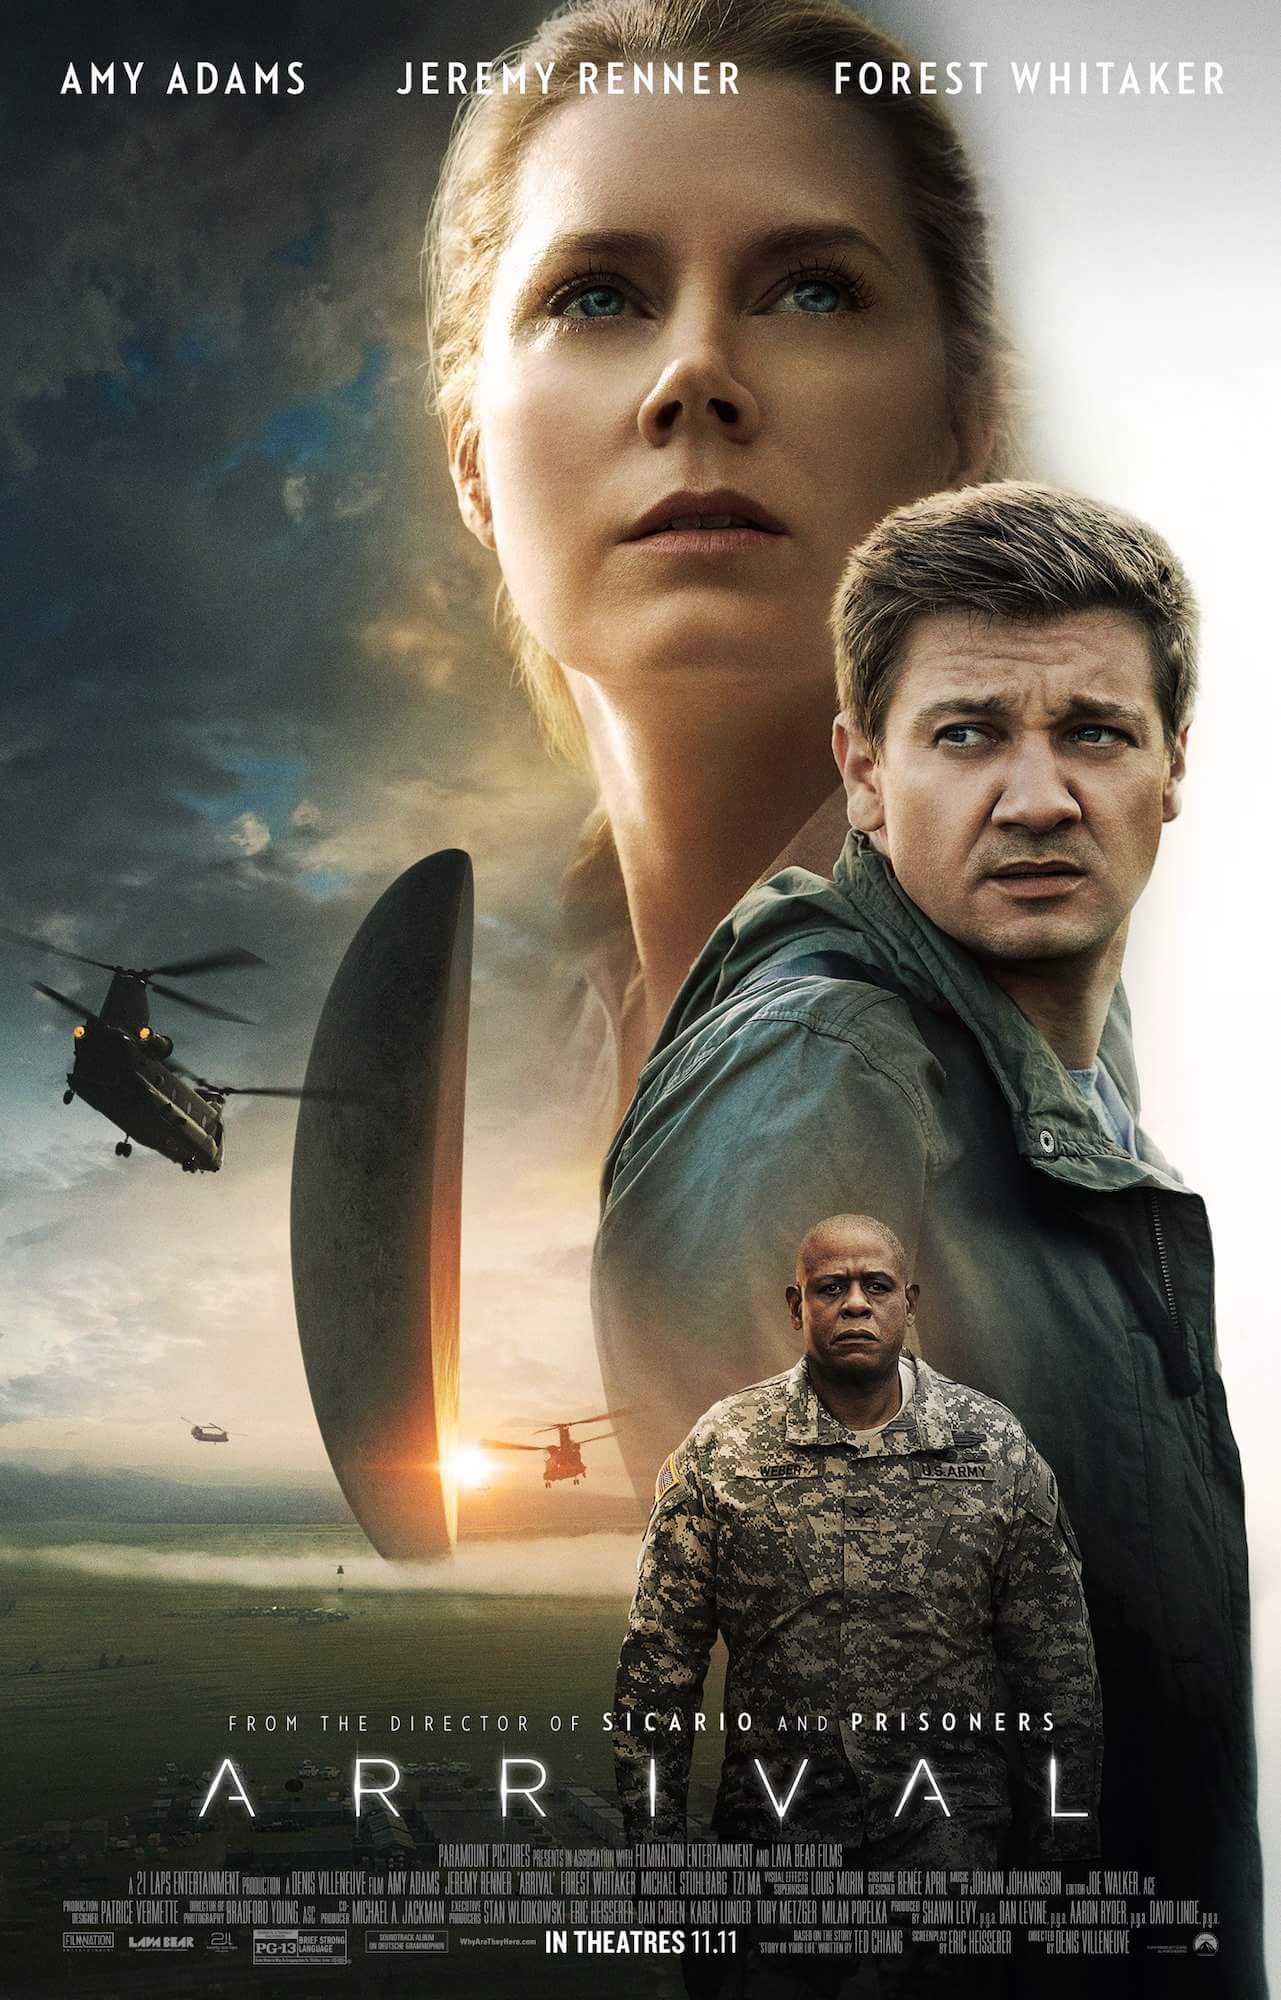 Arrival Movie images